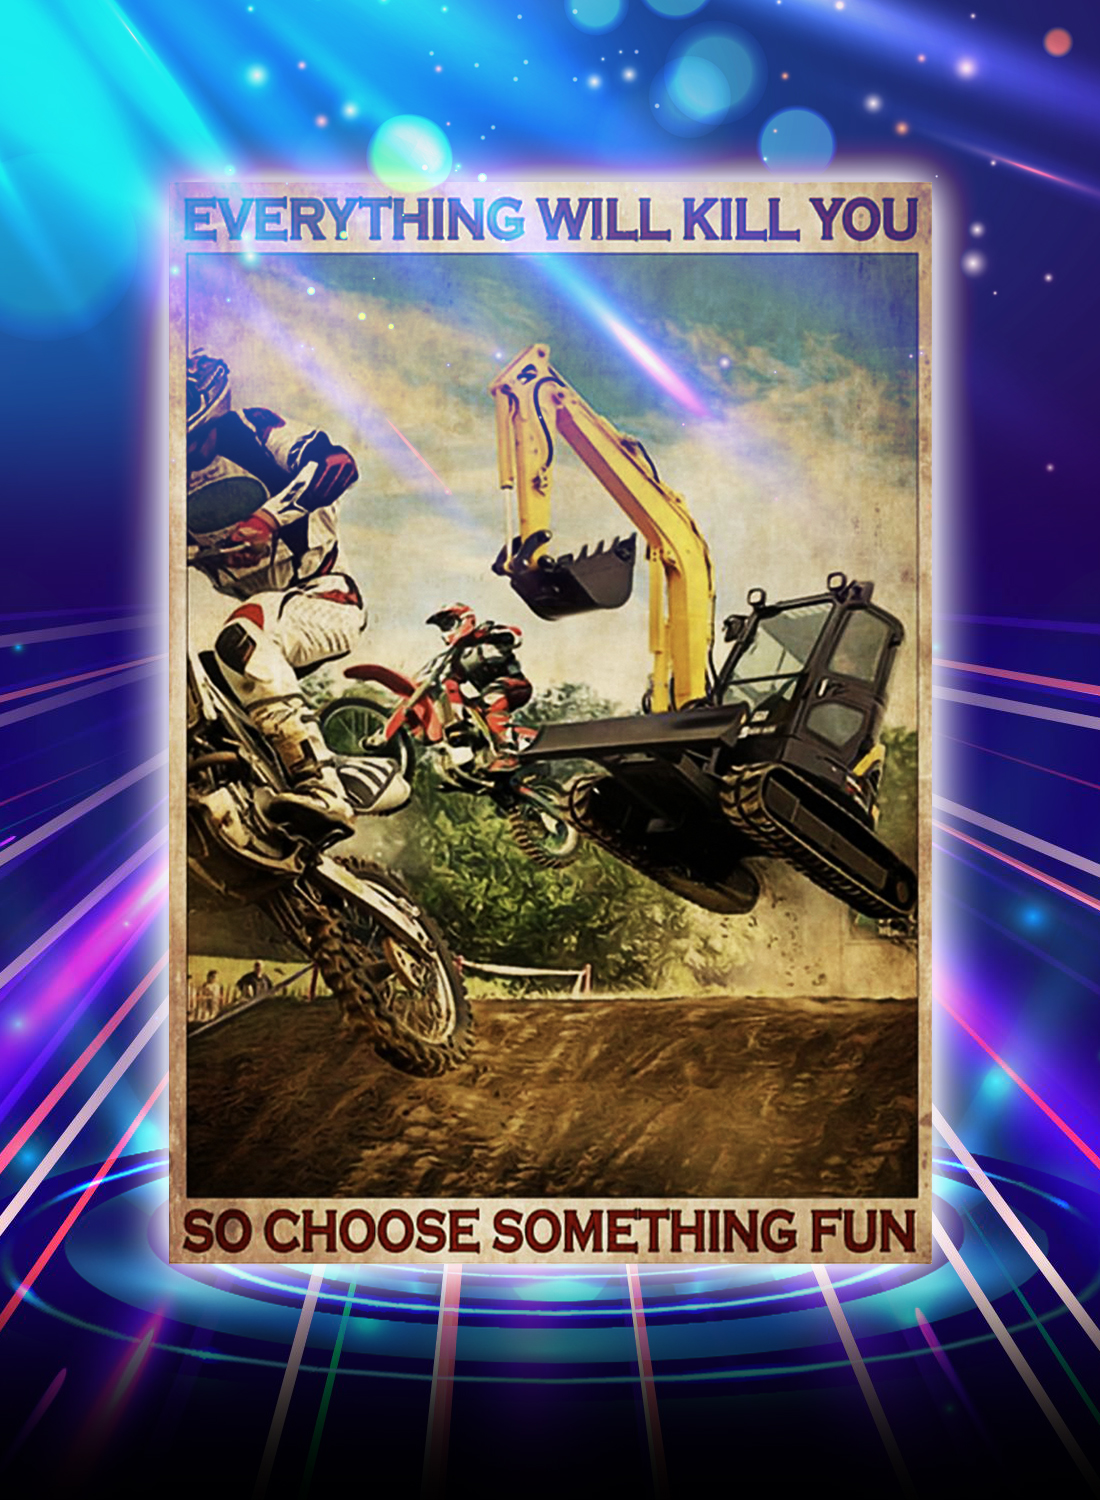 Motocross and excavator everything will kill you so choose something fun poster - A4